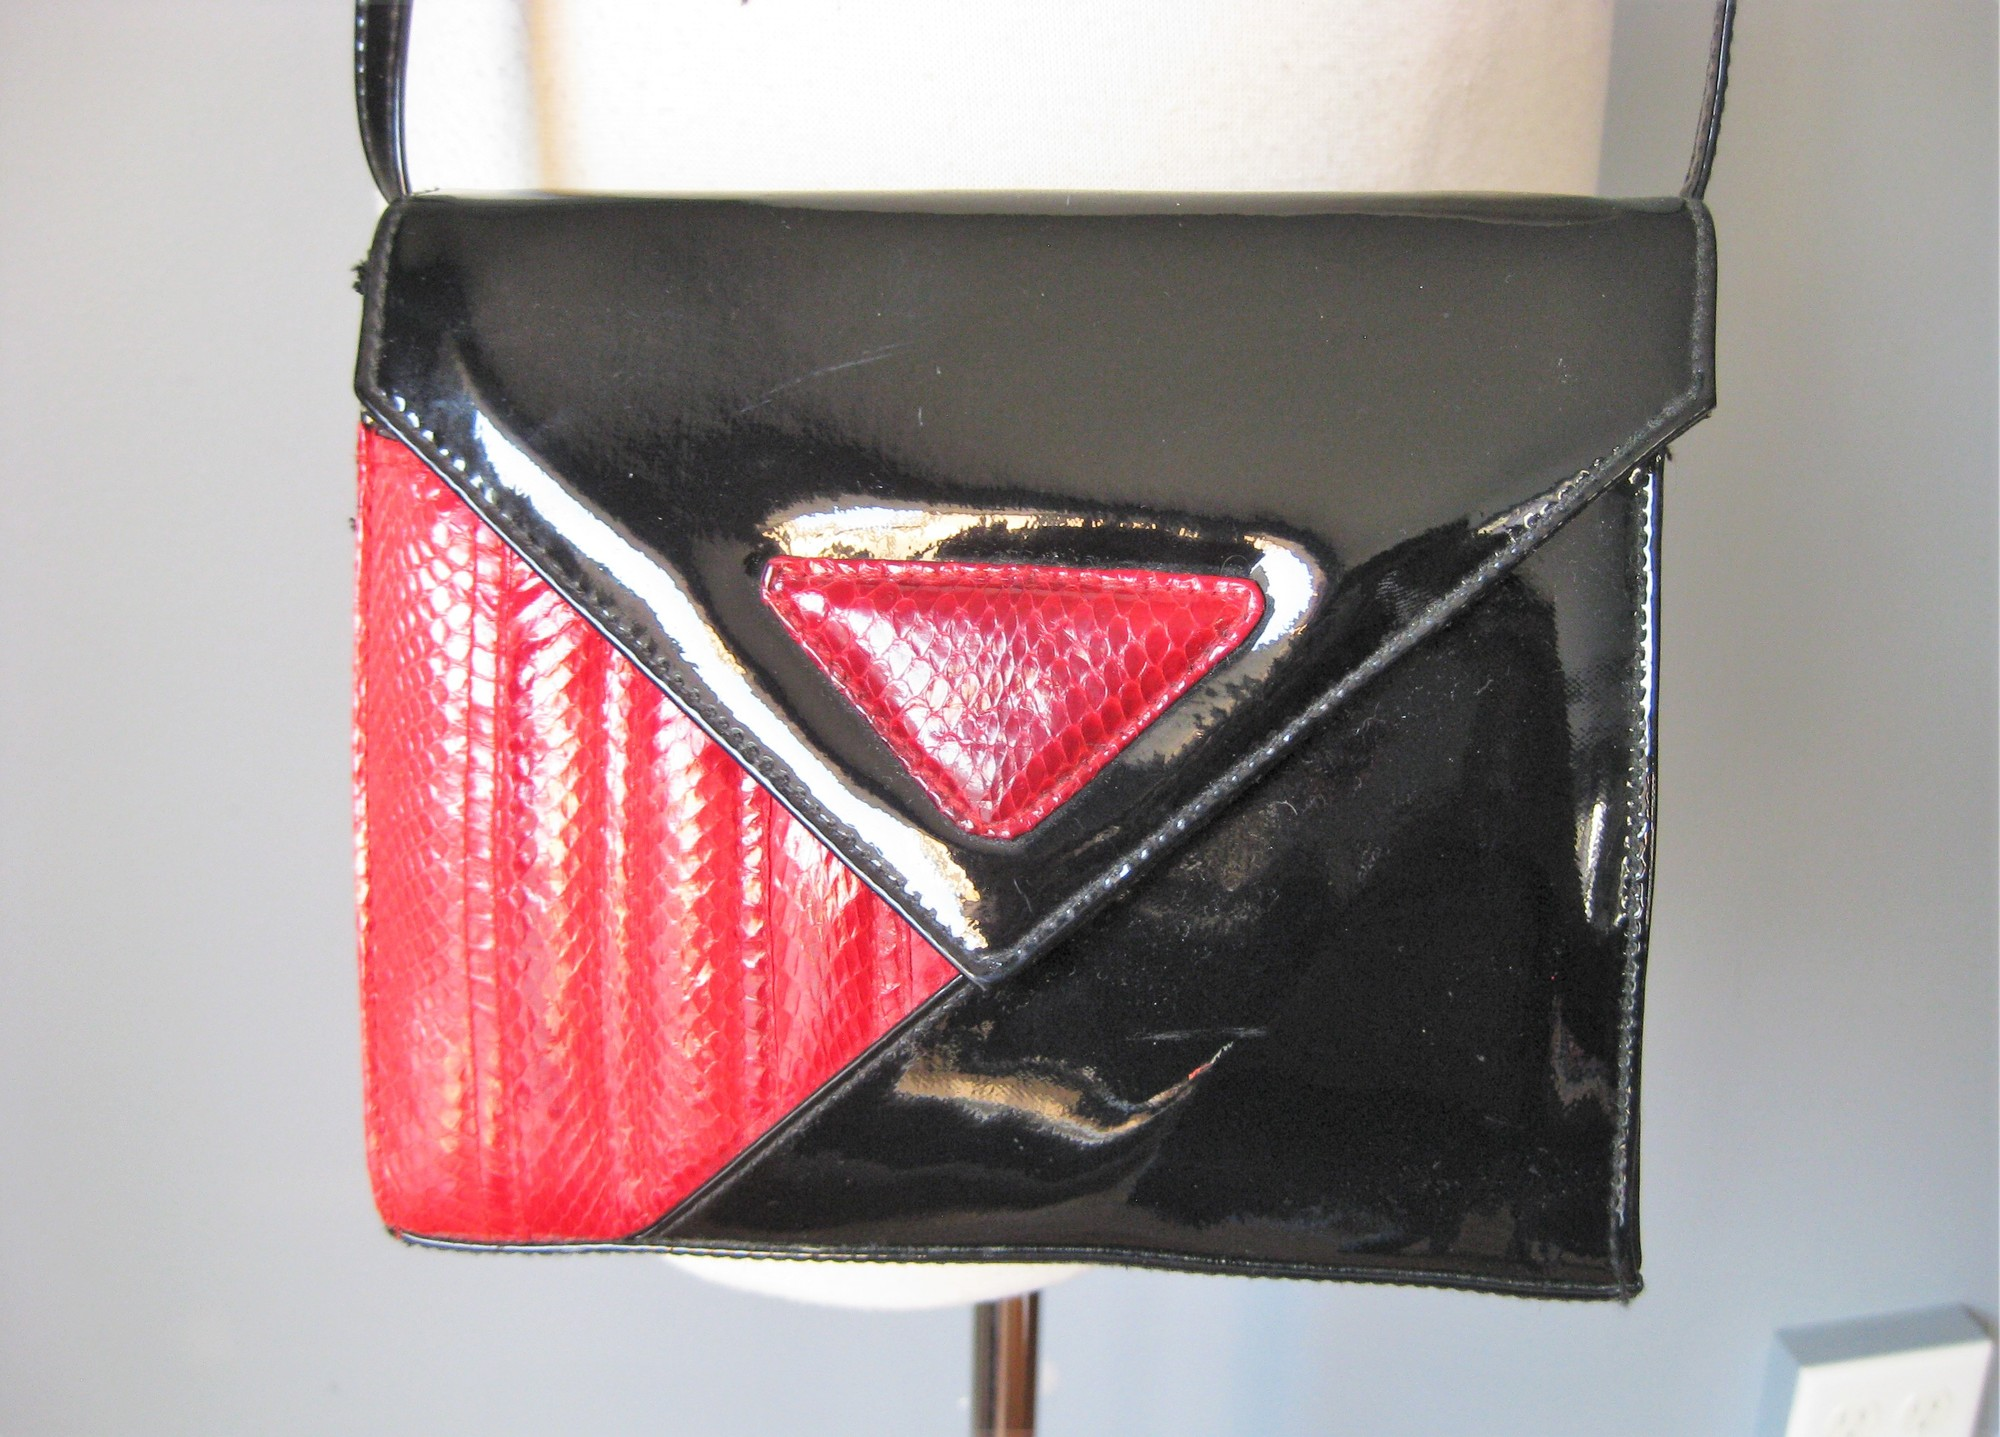 Everything about this purse proclaims its 80s origins<br /> Sharp color combination in red and black<br /> Triangular flap with snap closure<br /> A touch of snakeskin<br /> Long thin patent leather strap.<br /> Handy with one main compartment with a zippered pocket.<br /> Excellent condition, no tags<br /> <br /> 8in x 7in x 3in<br /> Strap drop: 24.5in  (the thin strap can be easily tied anywhere for shorter versions<br /> <br /> Great condition with minor rubs on the patent leather on the bottom of the bag<br /> <br /> thanks for looking!<br /> #14781